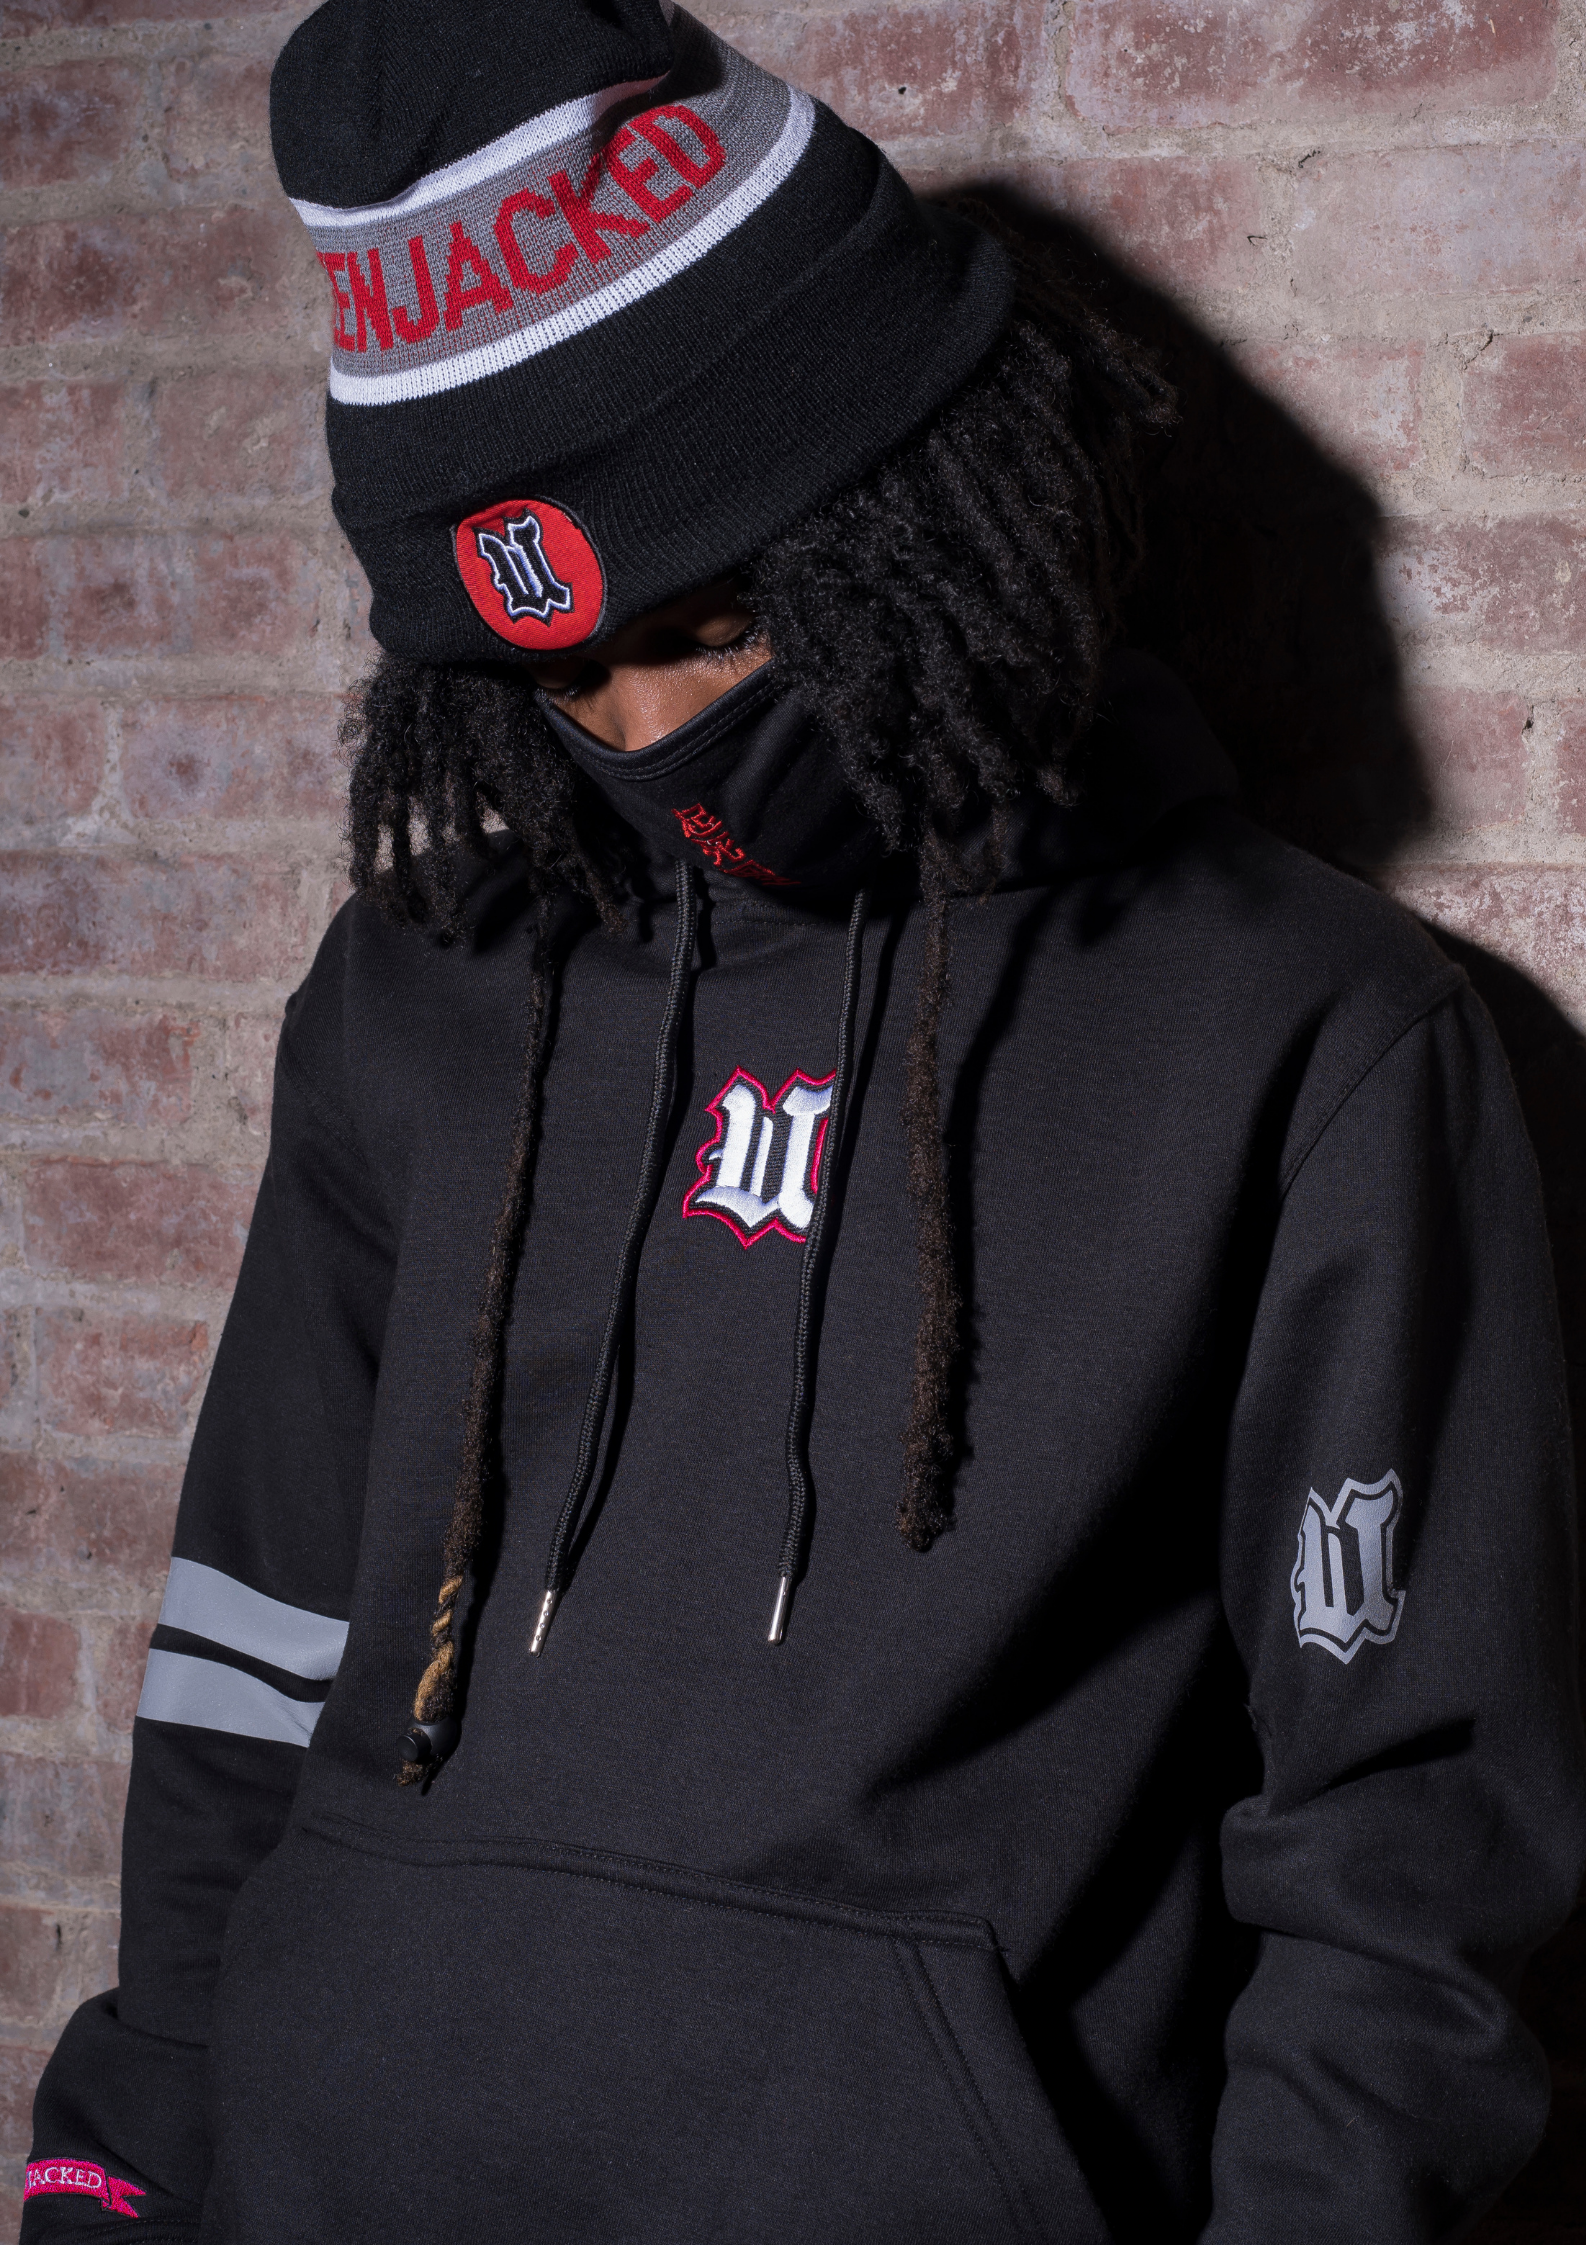 Model Wearing UBJ Beanie & Dreams Black Hoodie Front View